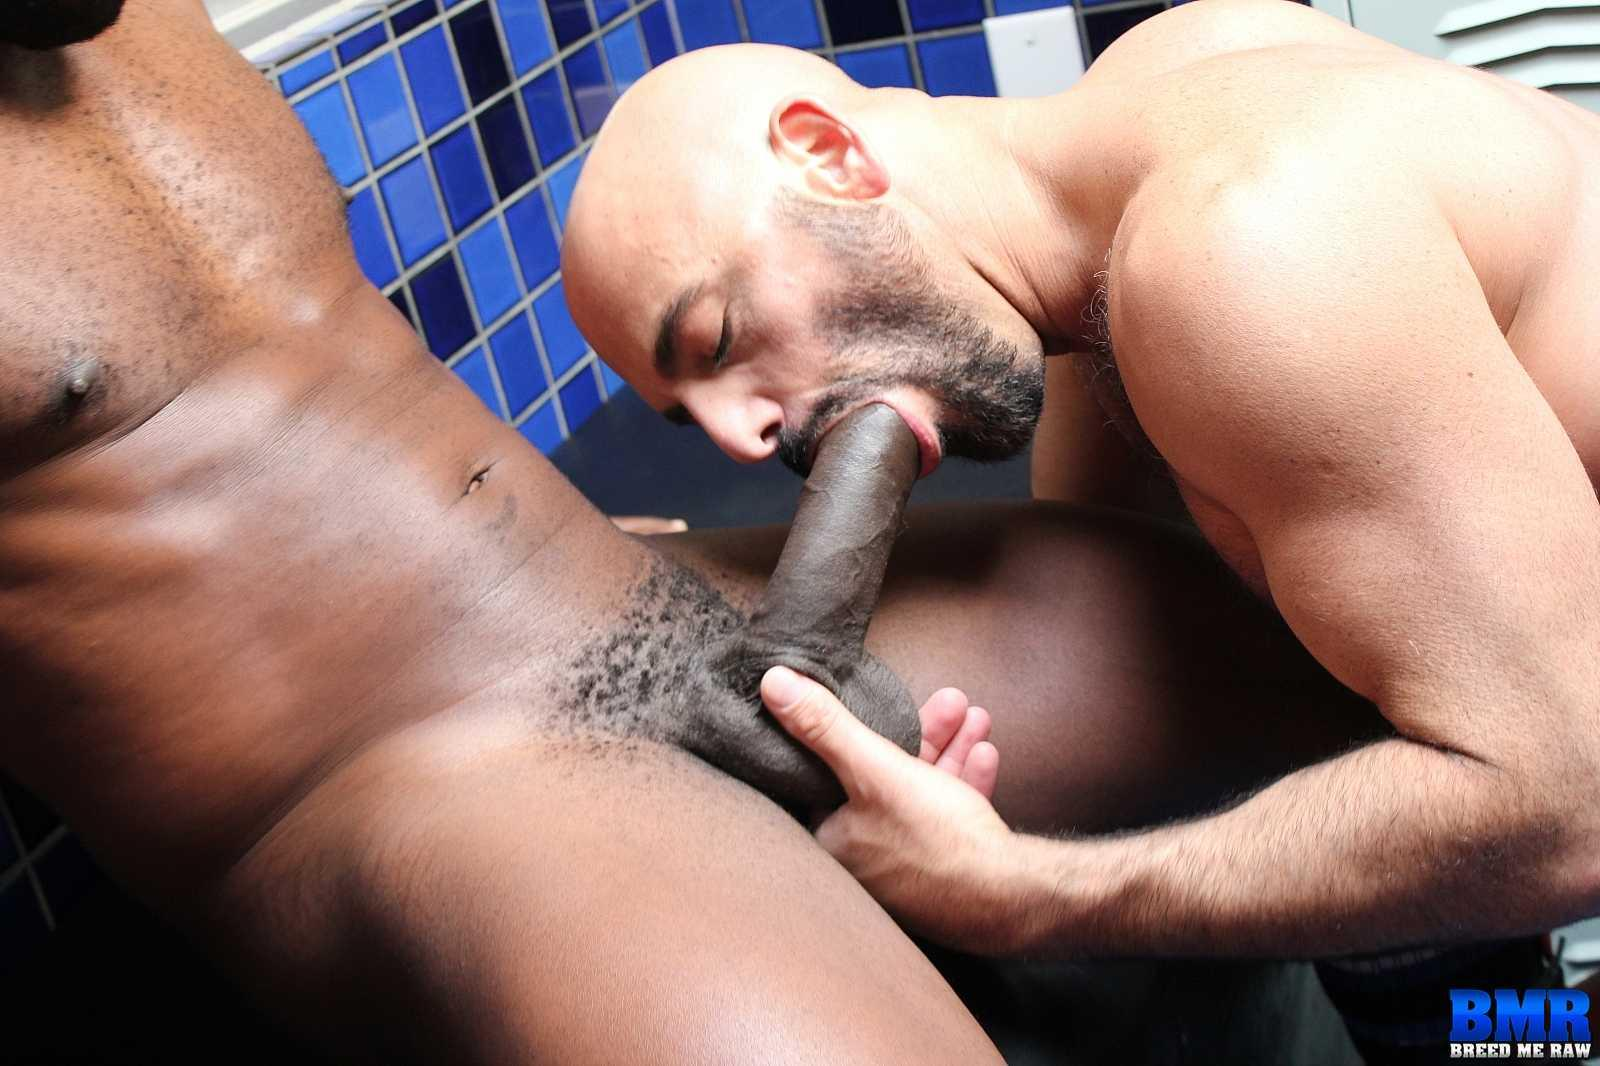 Breed-Me-Raw-Cutler-X-and-Adam-Russo-Black-Guy-With-Big-Black-Cock-Barebacking-White-Guy-Amateur-Gay-Porn-05.jpg